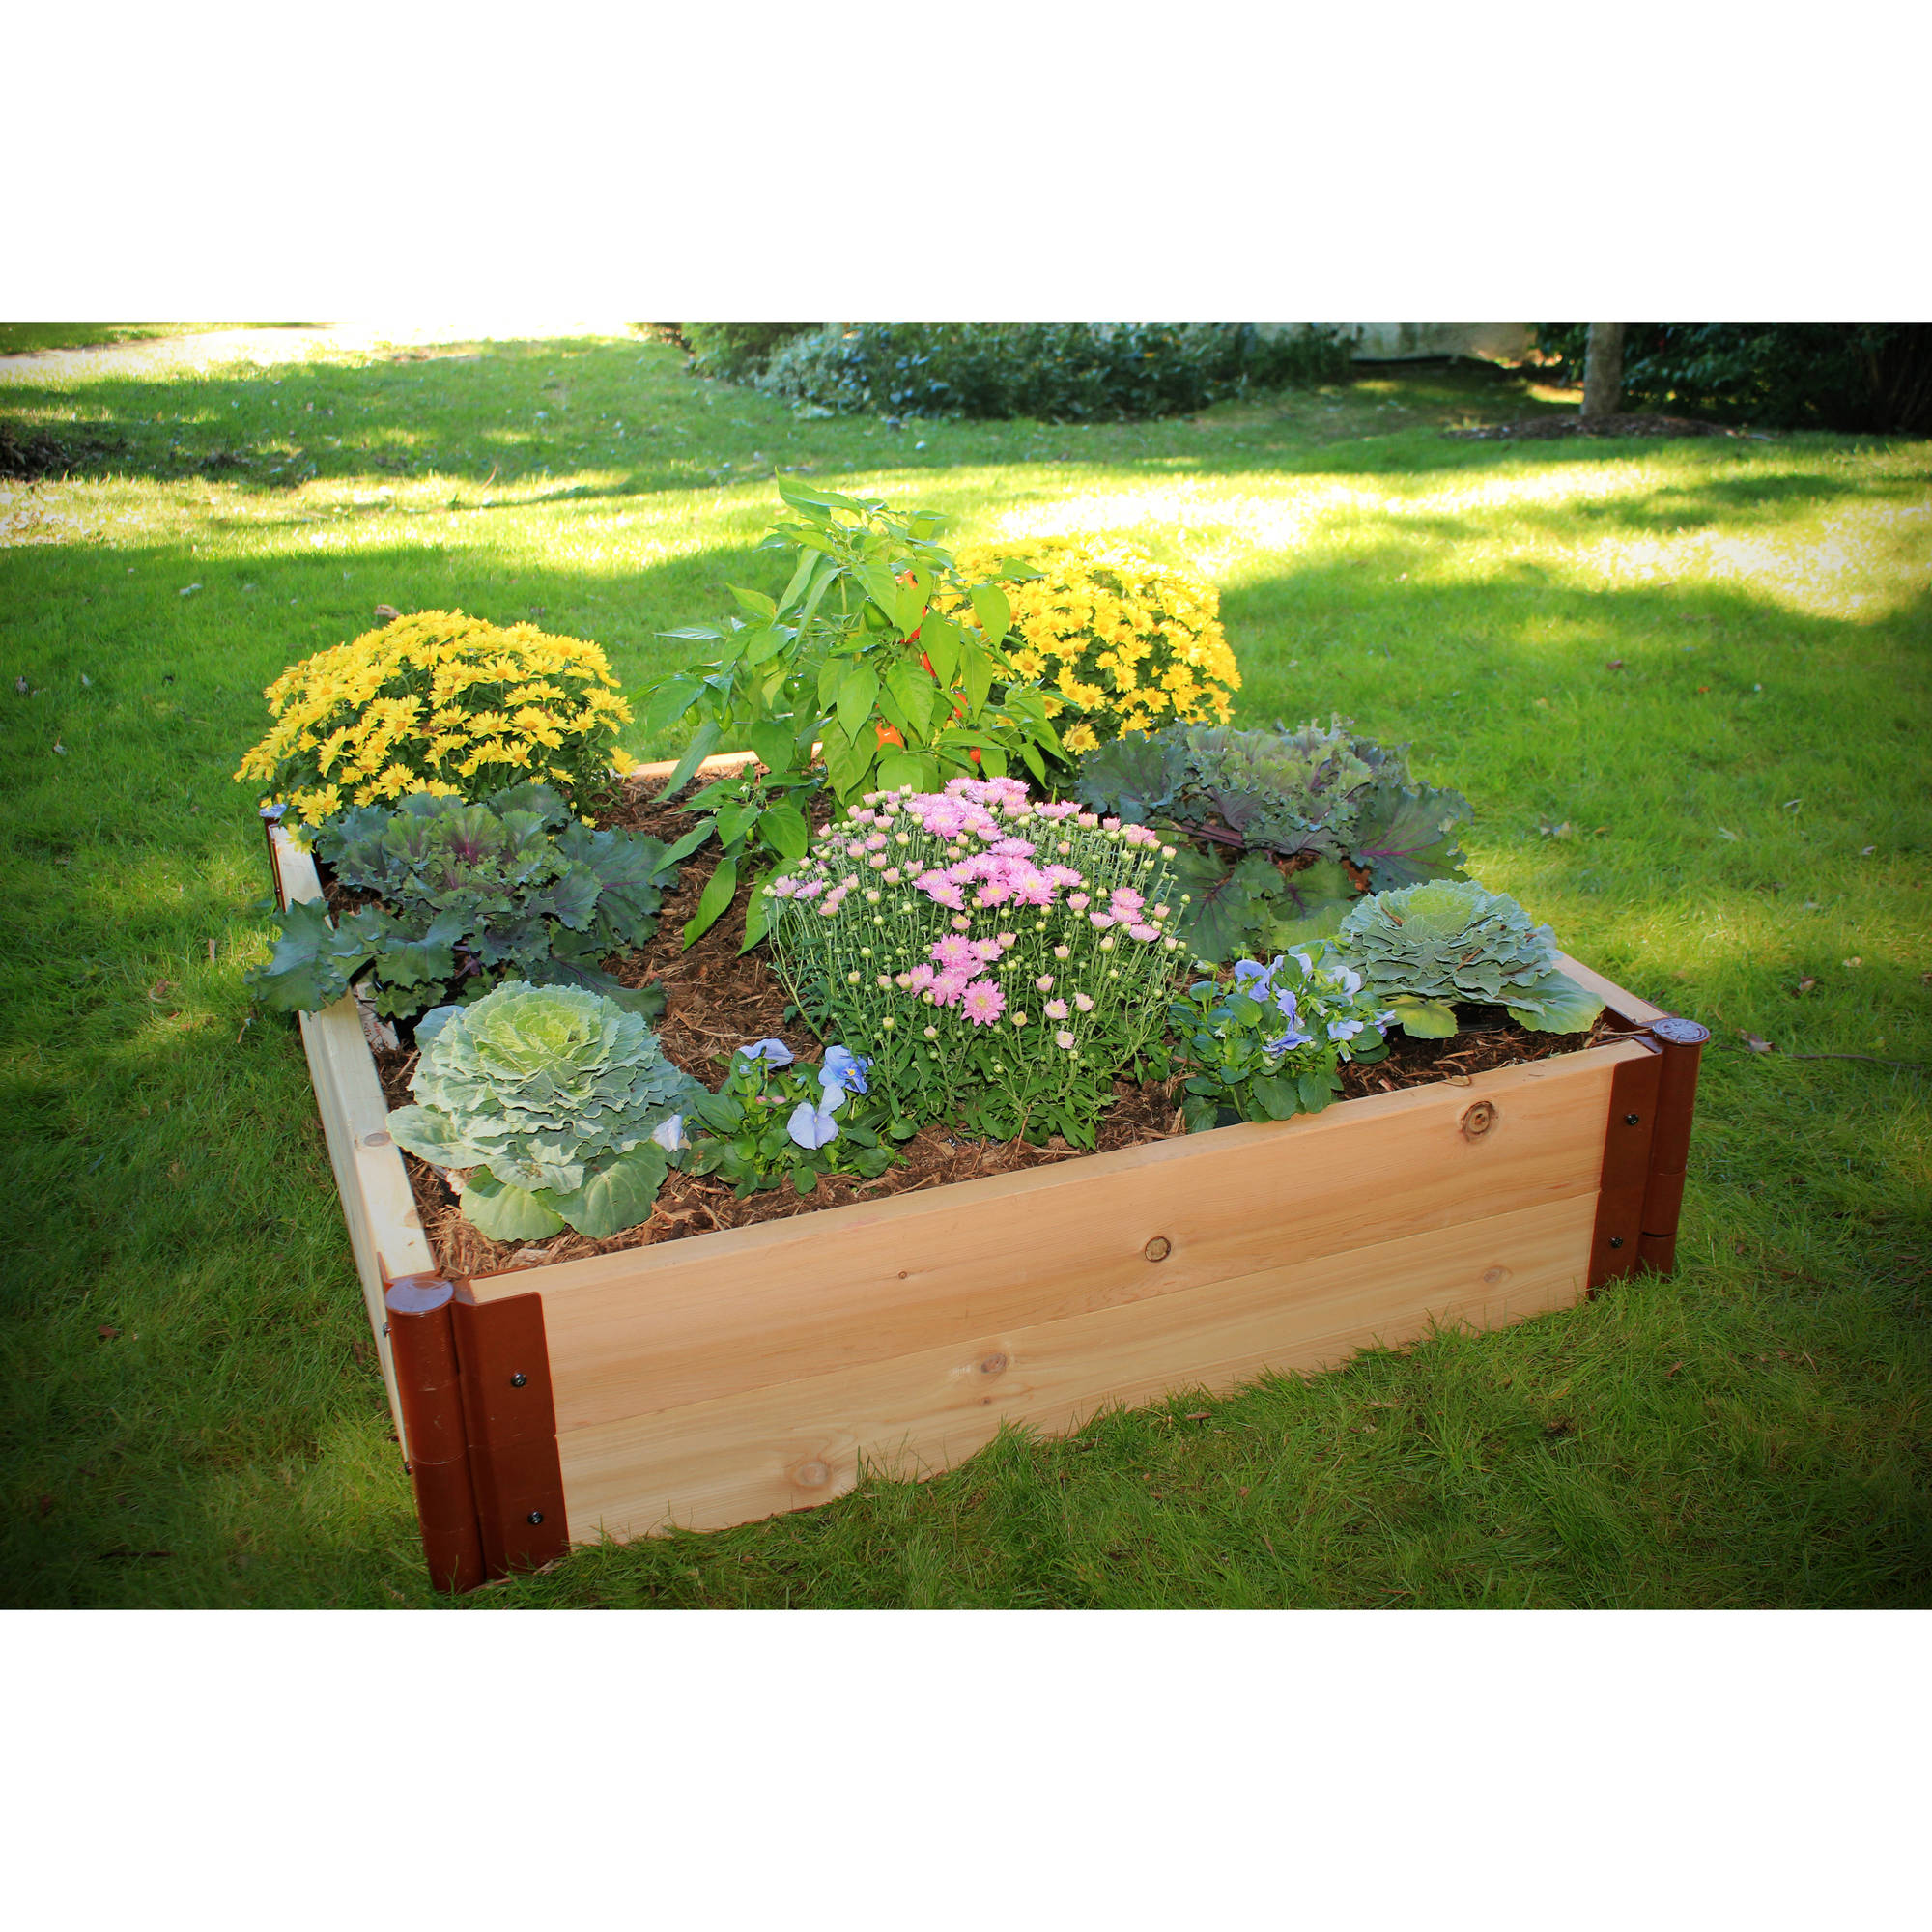 Frame It All 2-inch Series Cedar Raised Garden Bed Kit - 4ft. x 4ft. x 12in.